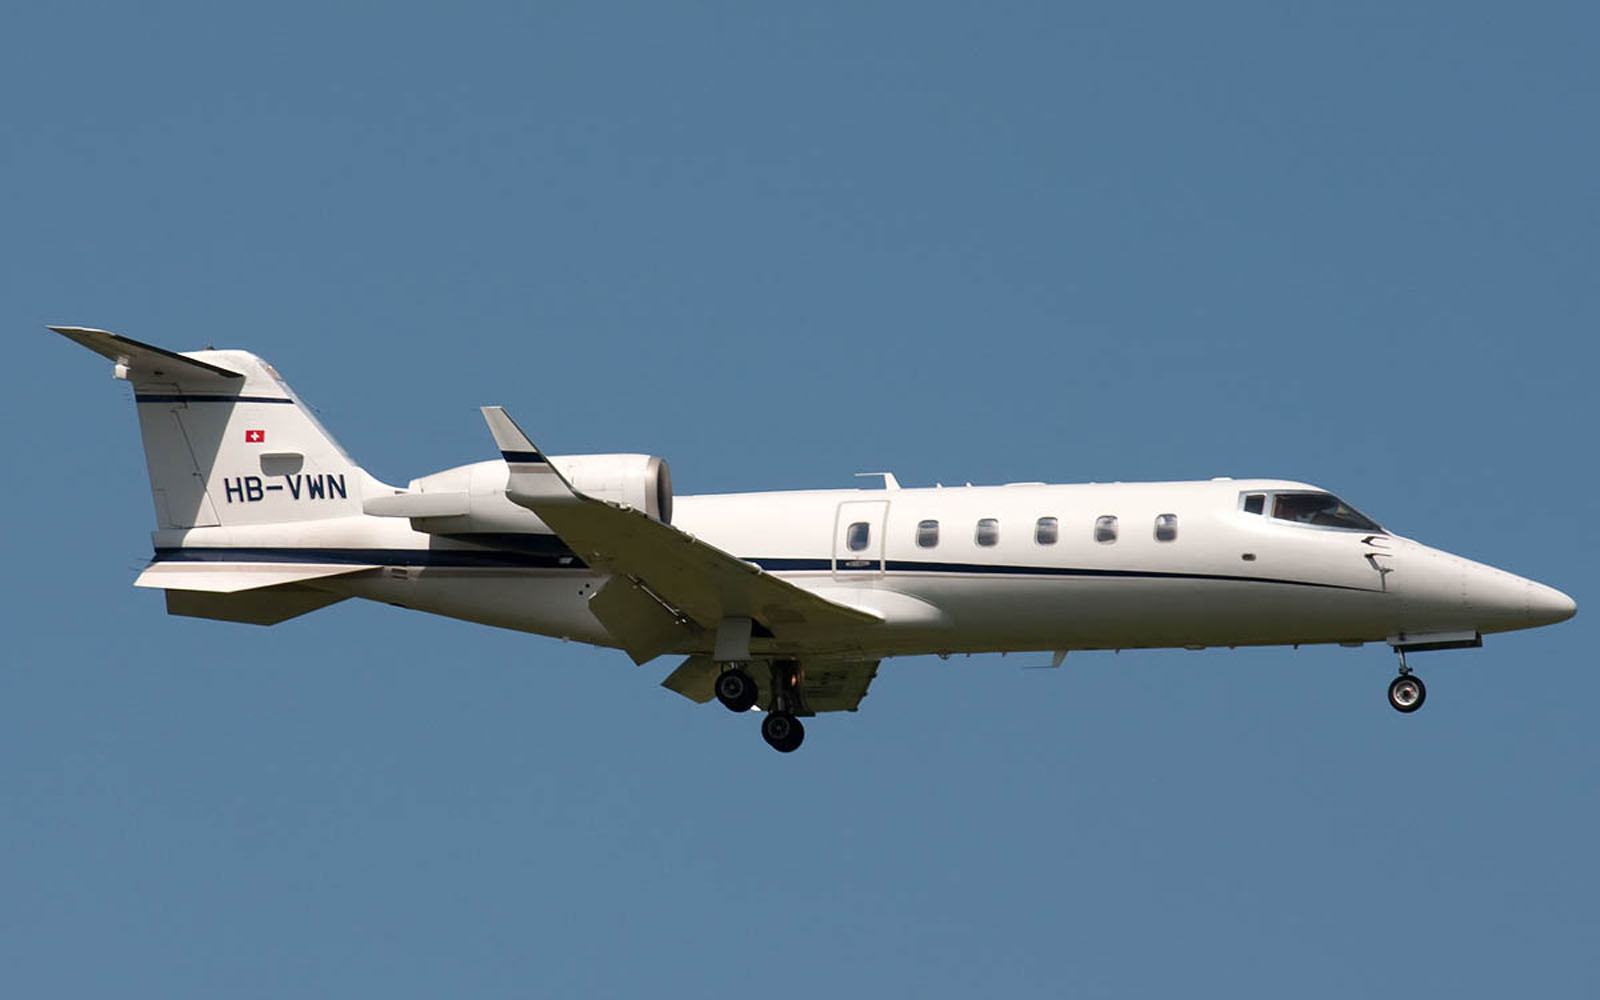 Download Free 3d Wallpapers For Windows 8 Wallpapers Bombardier Learjet 60 Wallpapers